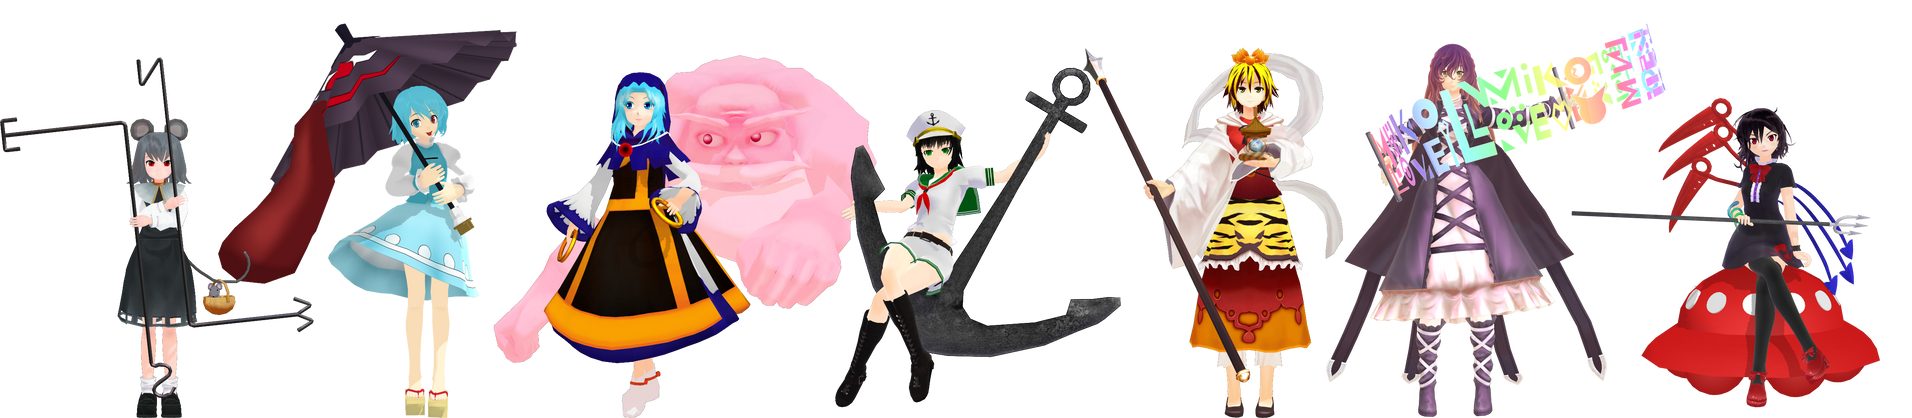 [MMD] UFO Crew by Totalheartsboy